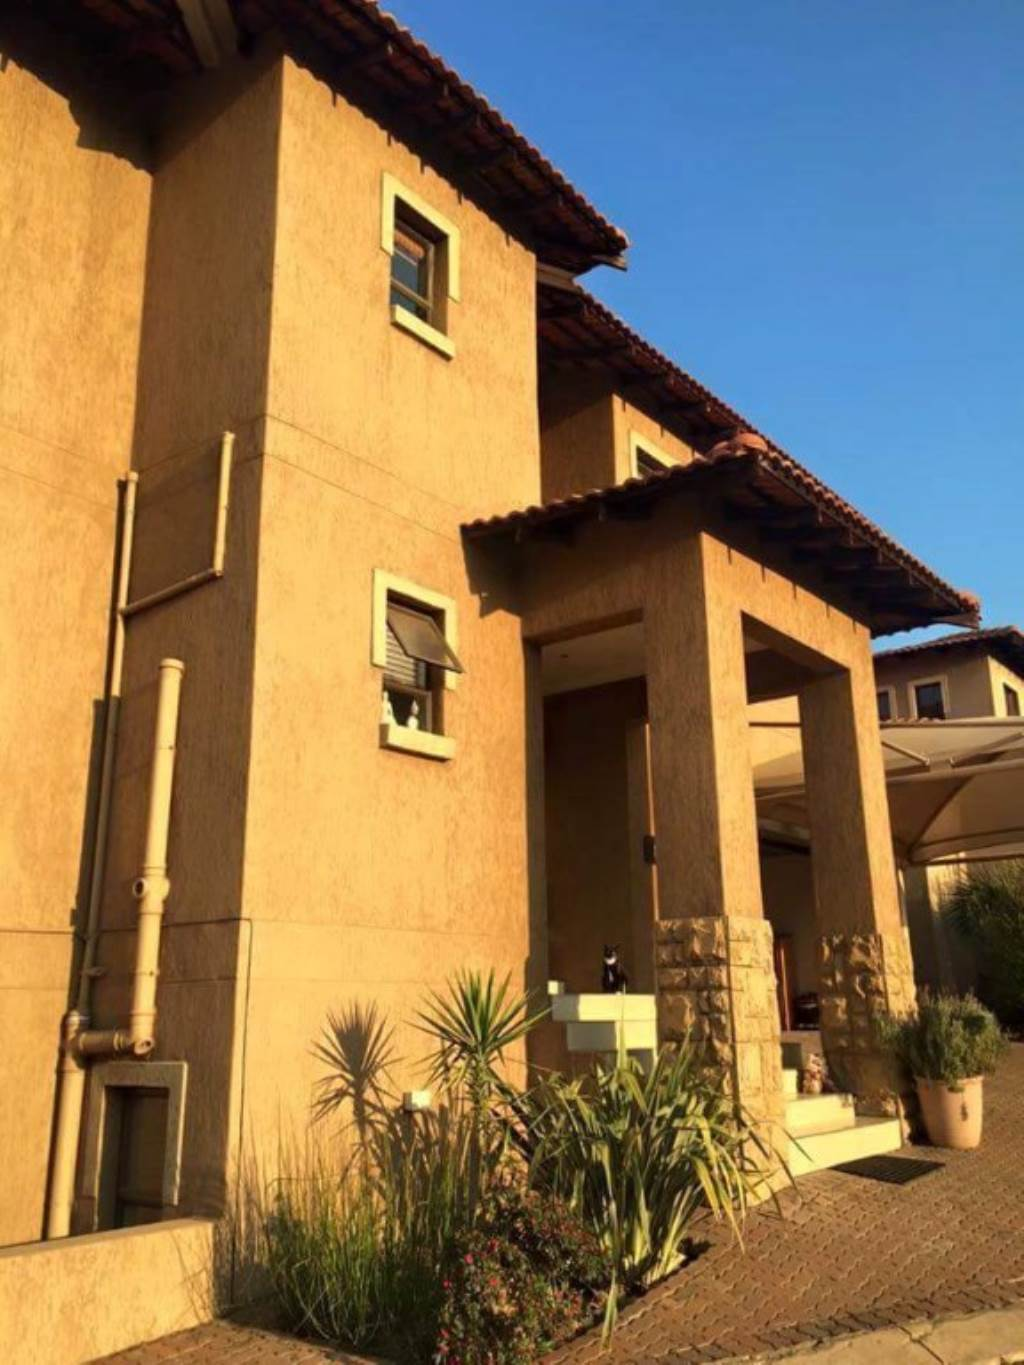 4 BedroomHouse For Sale In Three Rivers